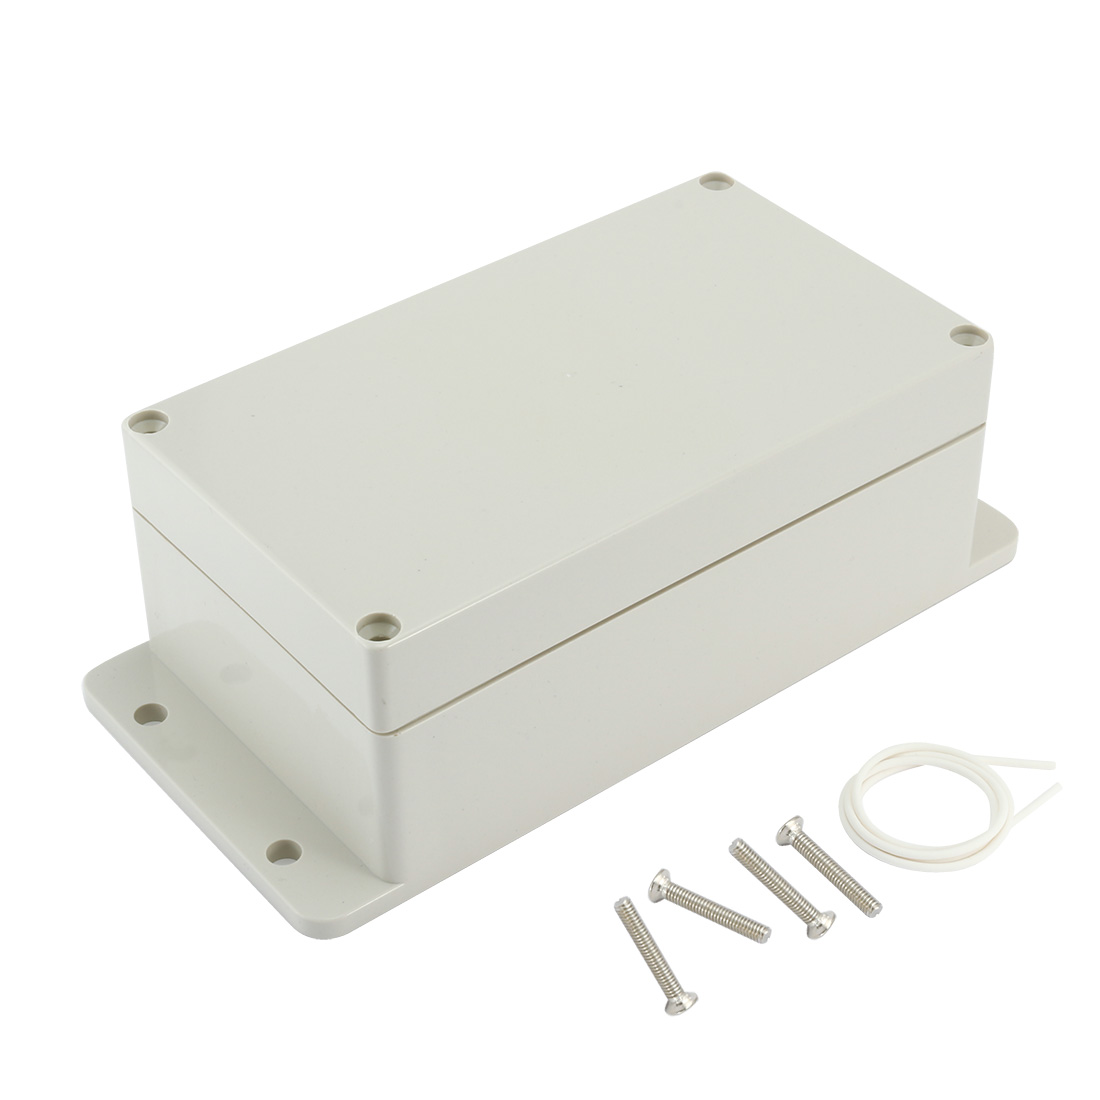 """6.2""""x3.54""""x2.51""""(158mmx90mmx64mm) ABS Junction Box Universal Electric Project Enclosure"""